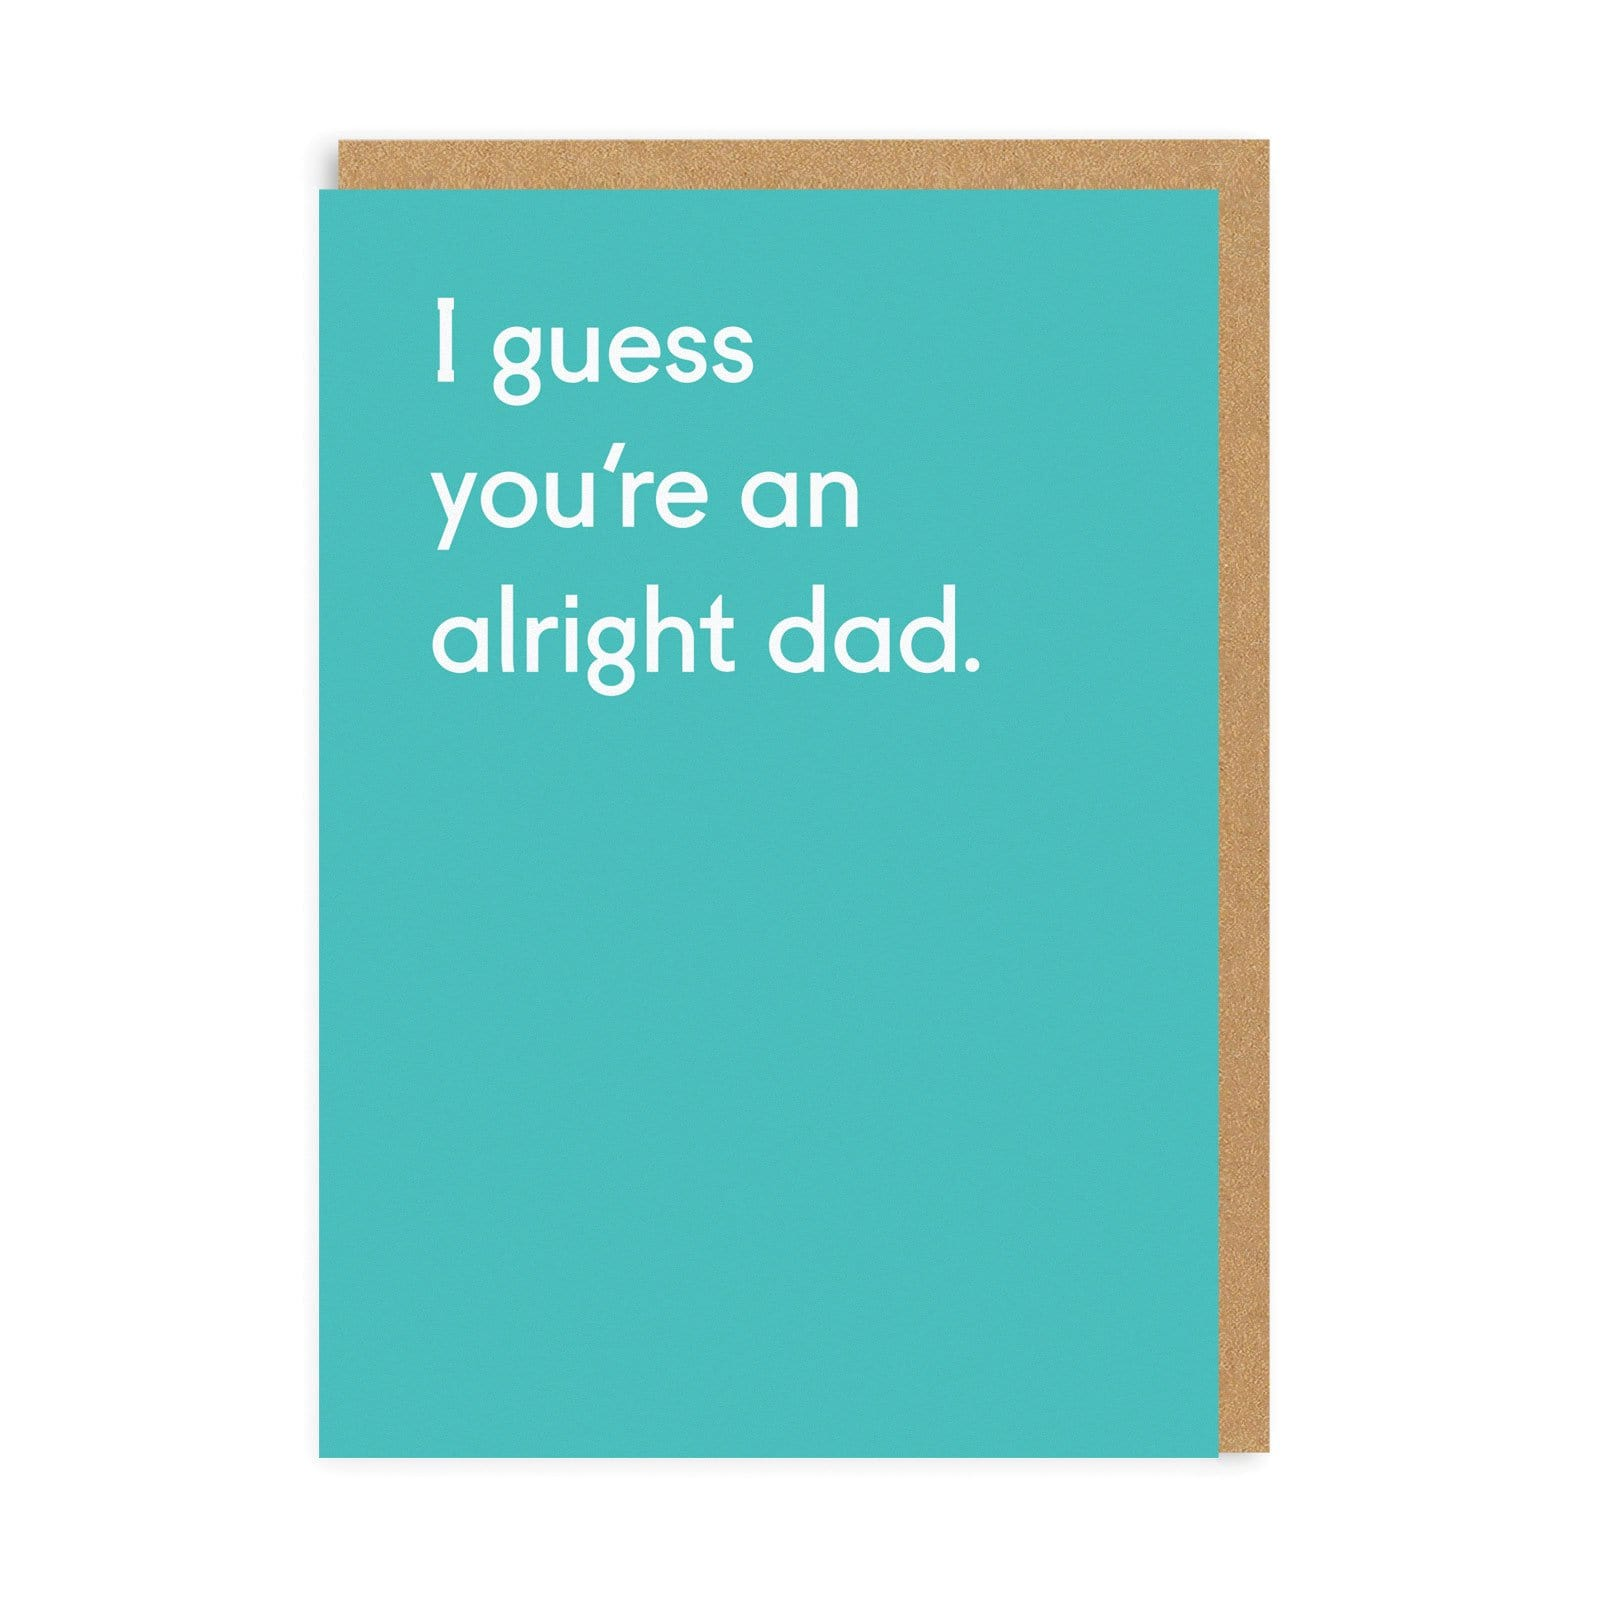 Blue greetings card with dad quote in white, with brown envelope in background